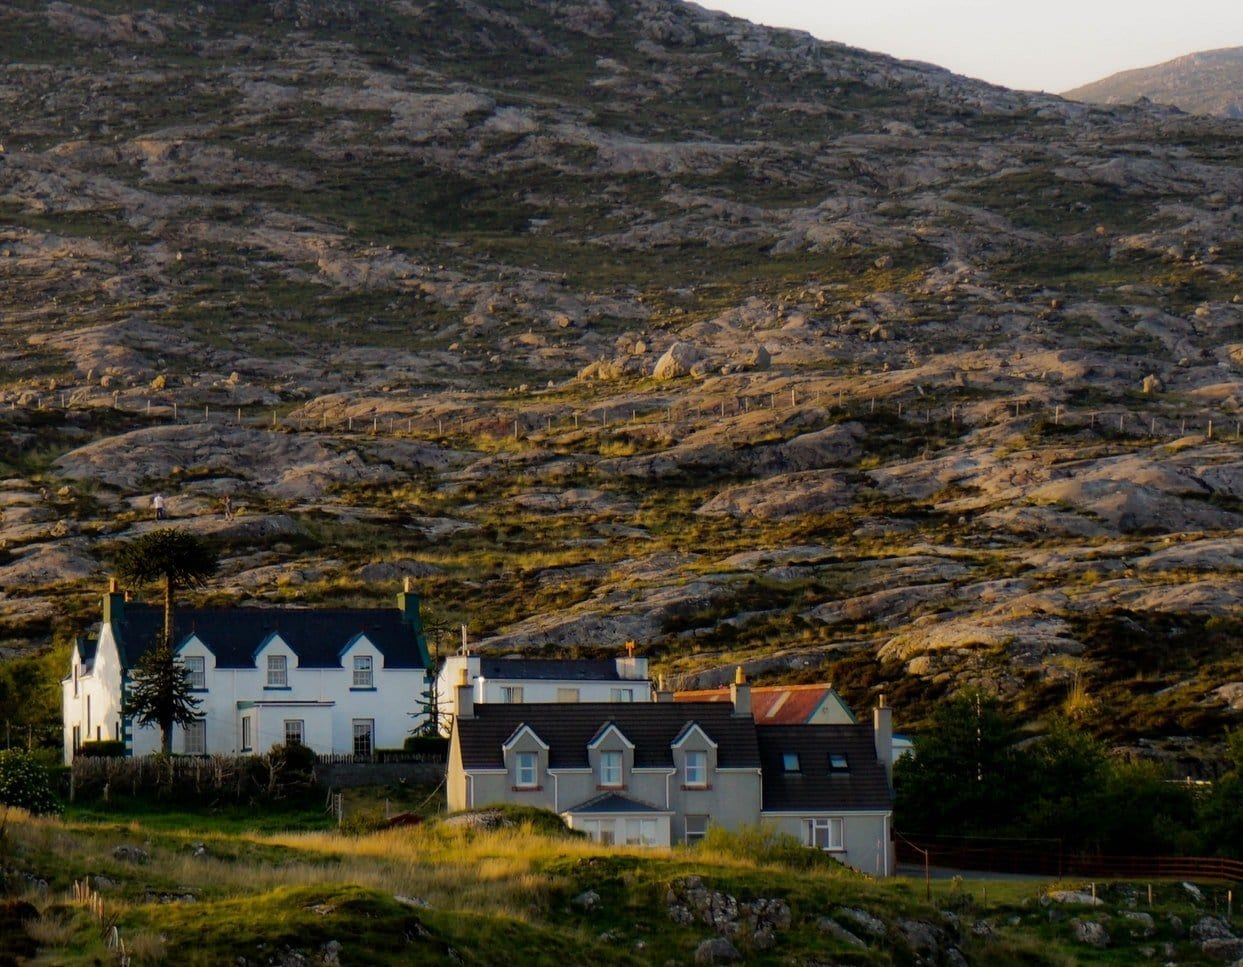 houses on isle of harris